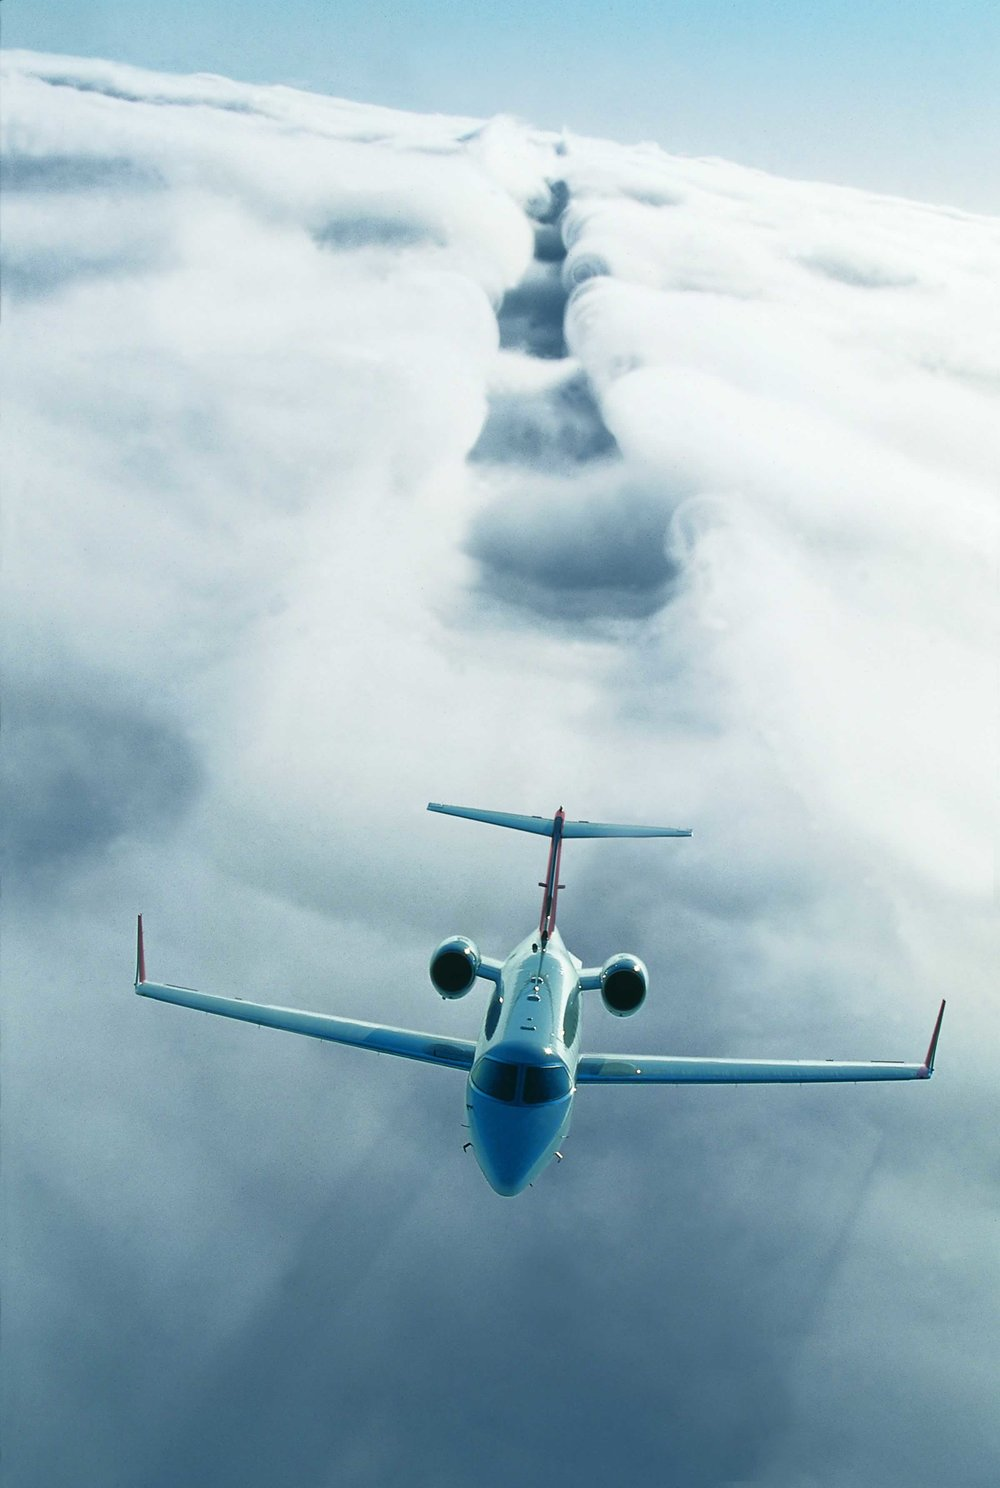 Learjet 40 XR in flight 2.jpg